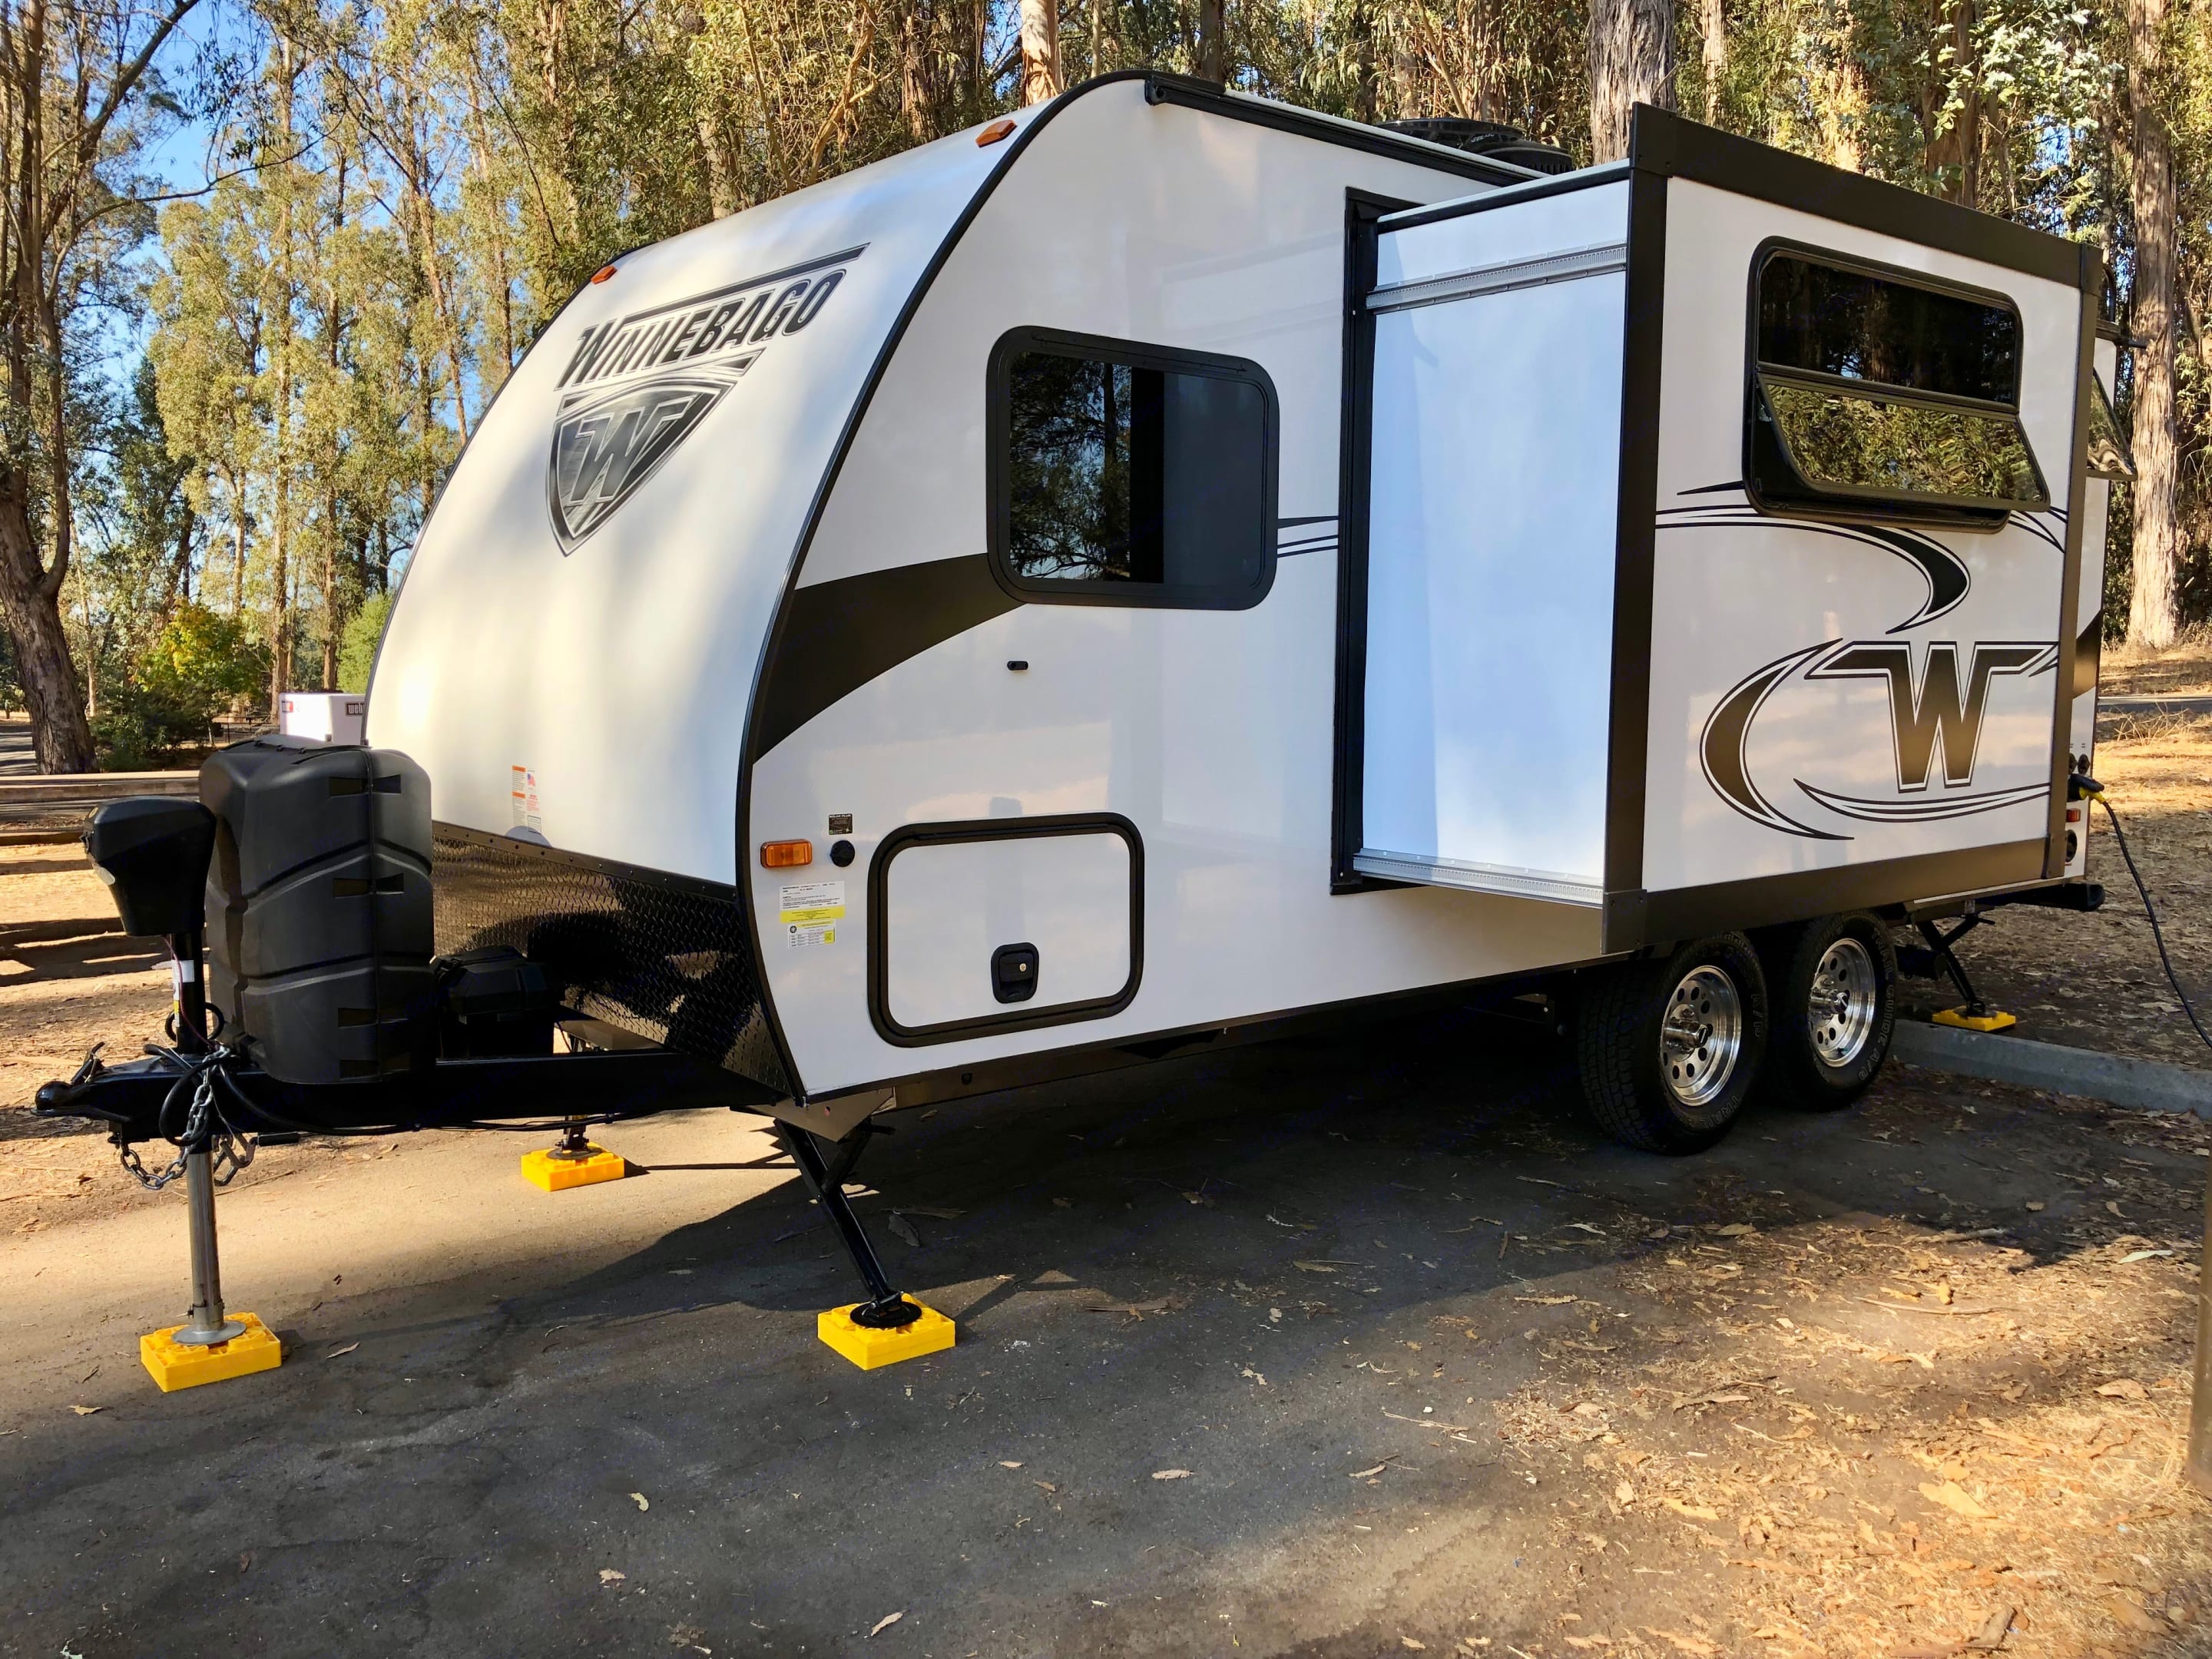 Added interior space through an electronic slide-out.. Winnebago Micro Minnie 2019